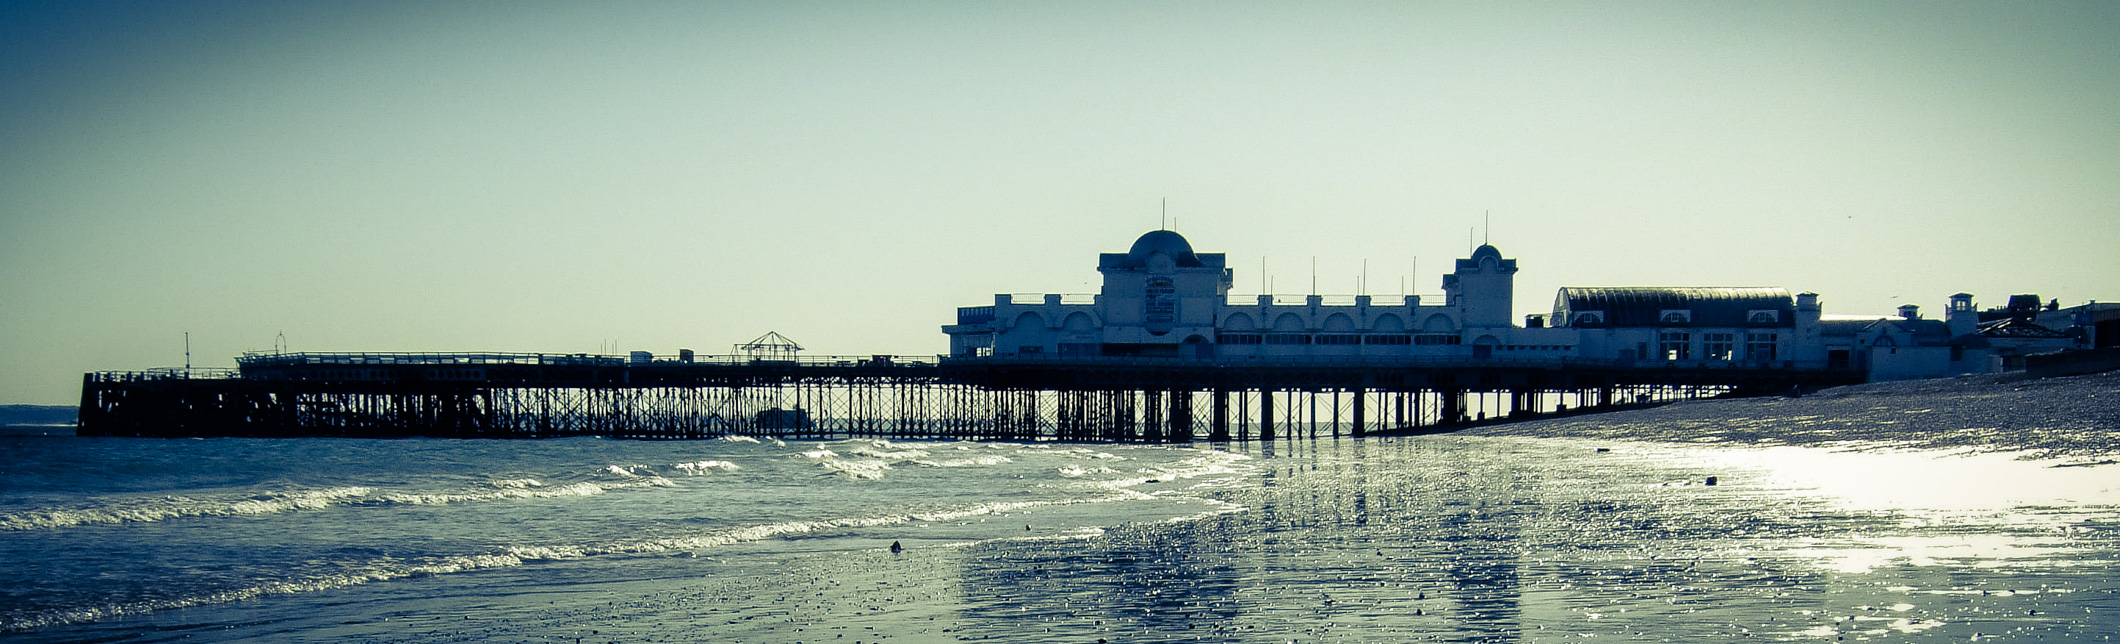 South Parade Pier - Aged and Duotone